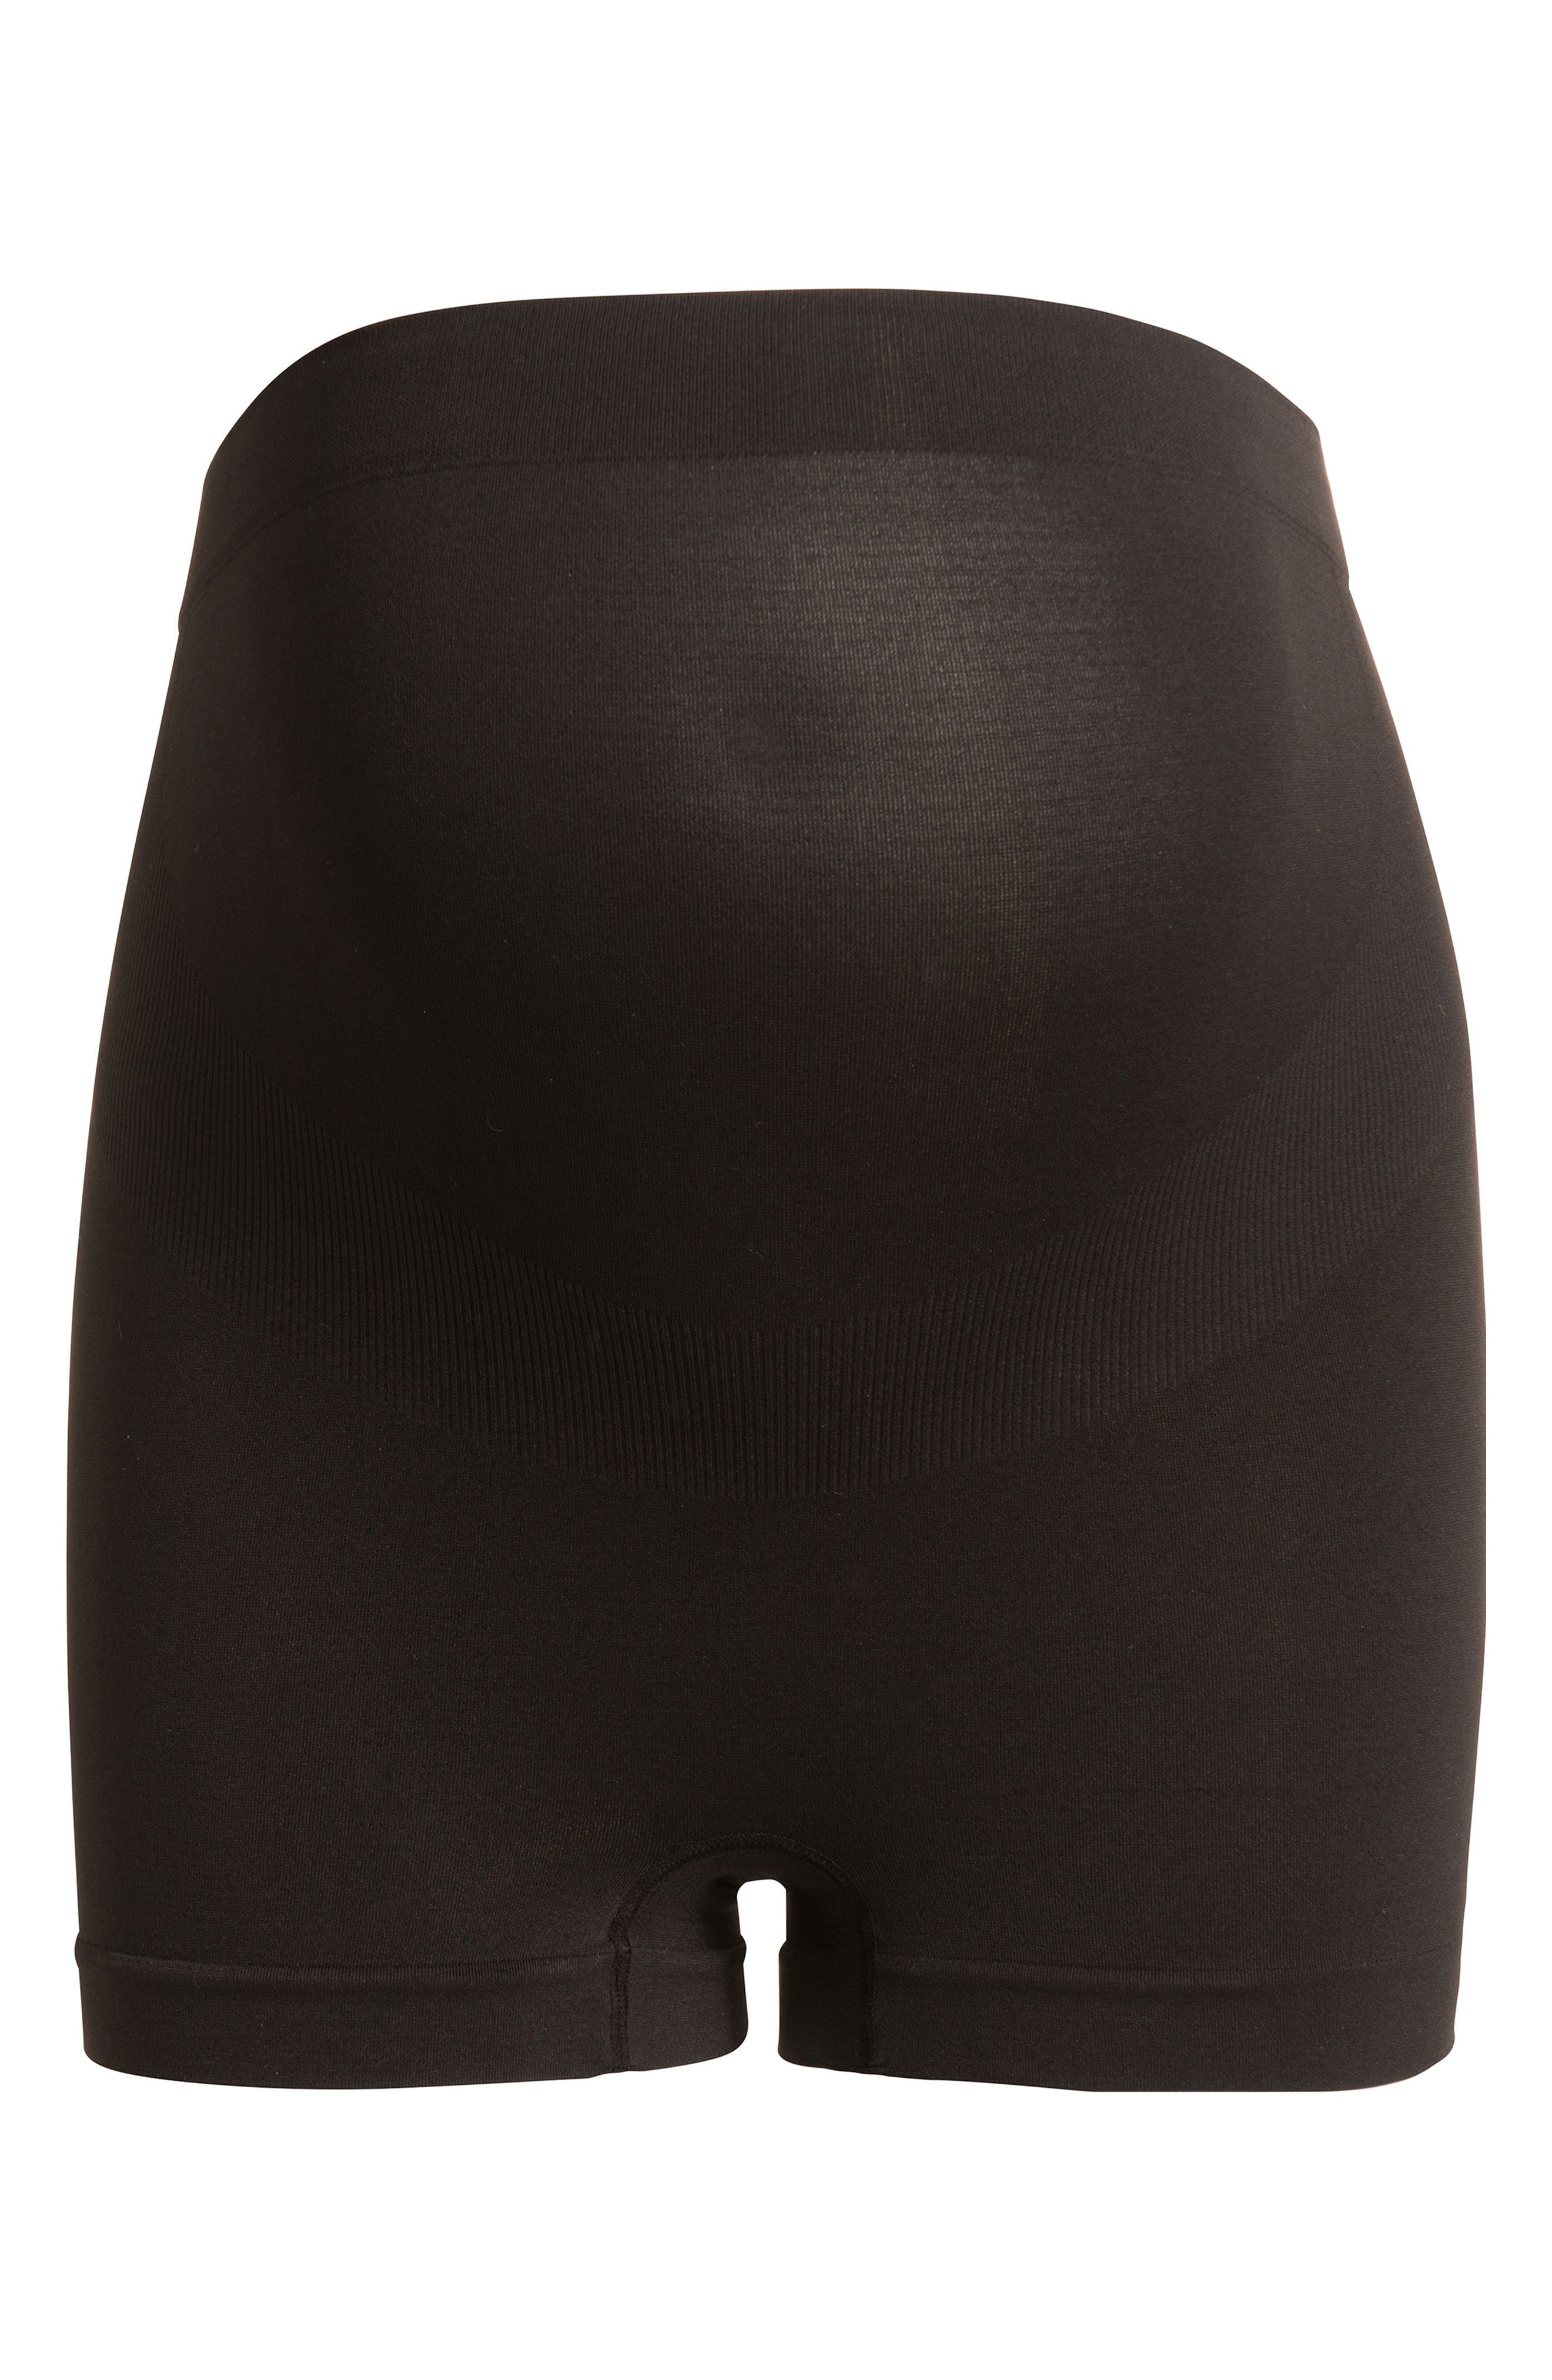 Main Image - Noppies Seamless Maternity Shorts